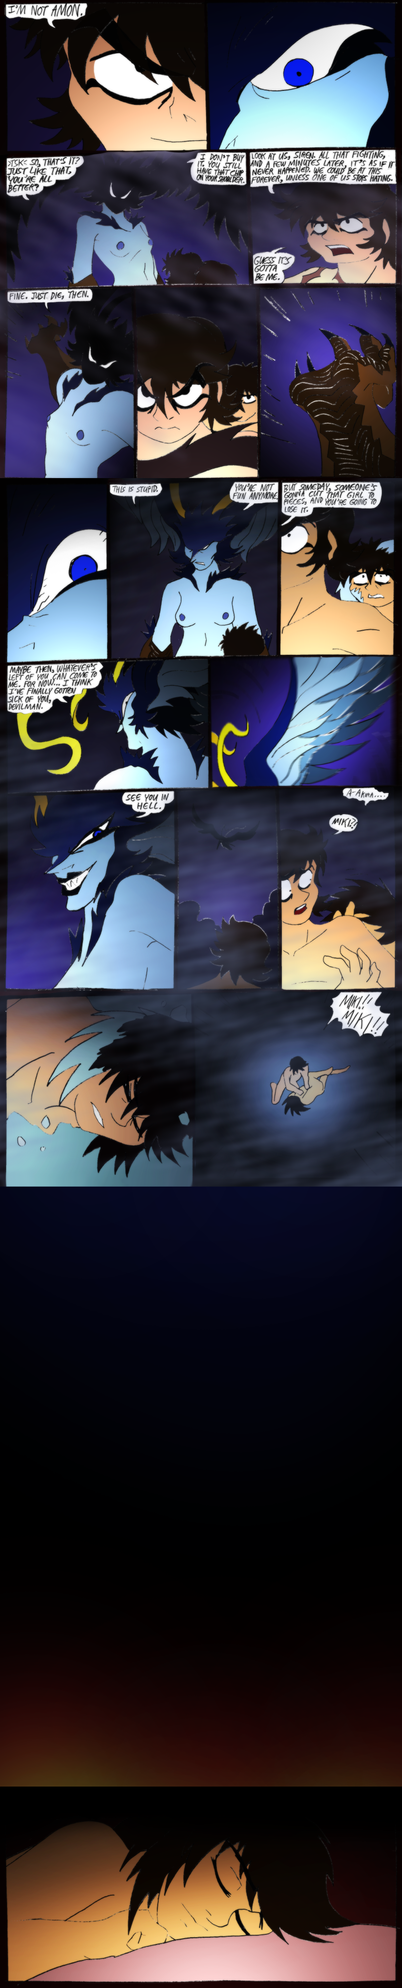 Wrath of the Devilman-115- Uh... bye? (uncensored) by NickinAmerica